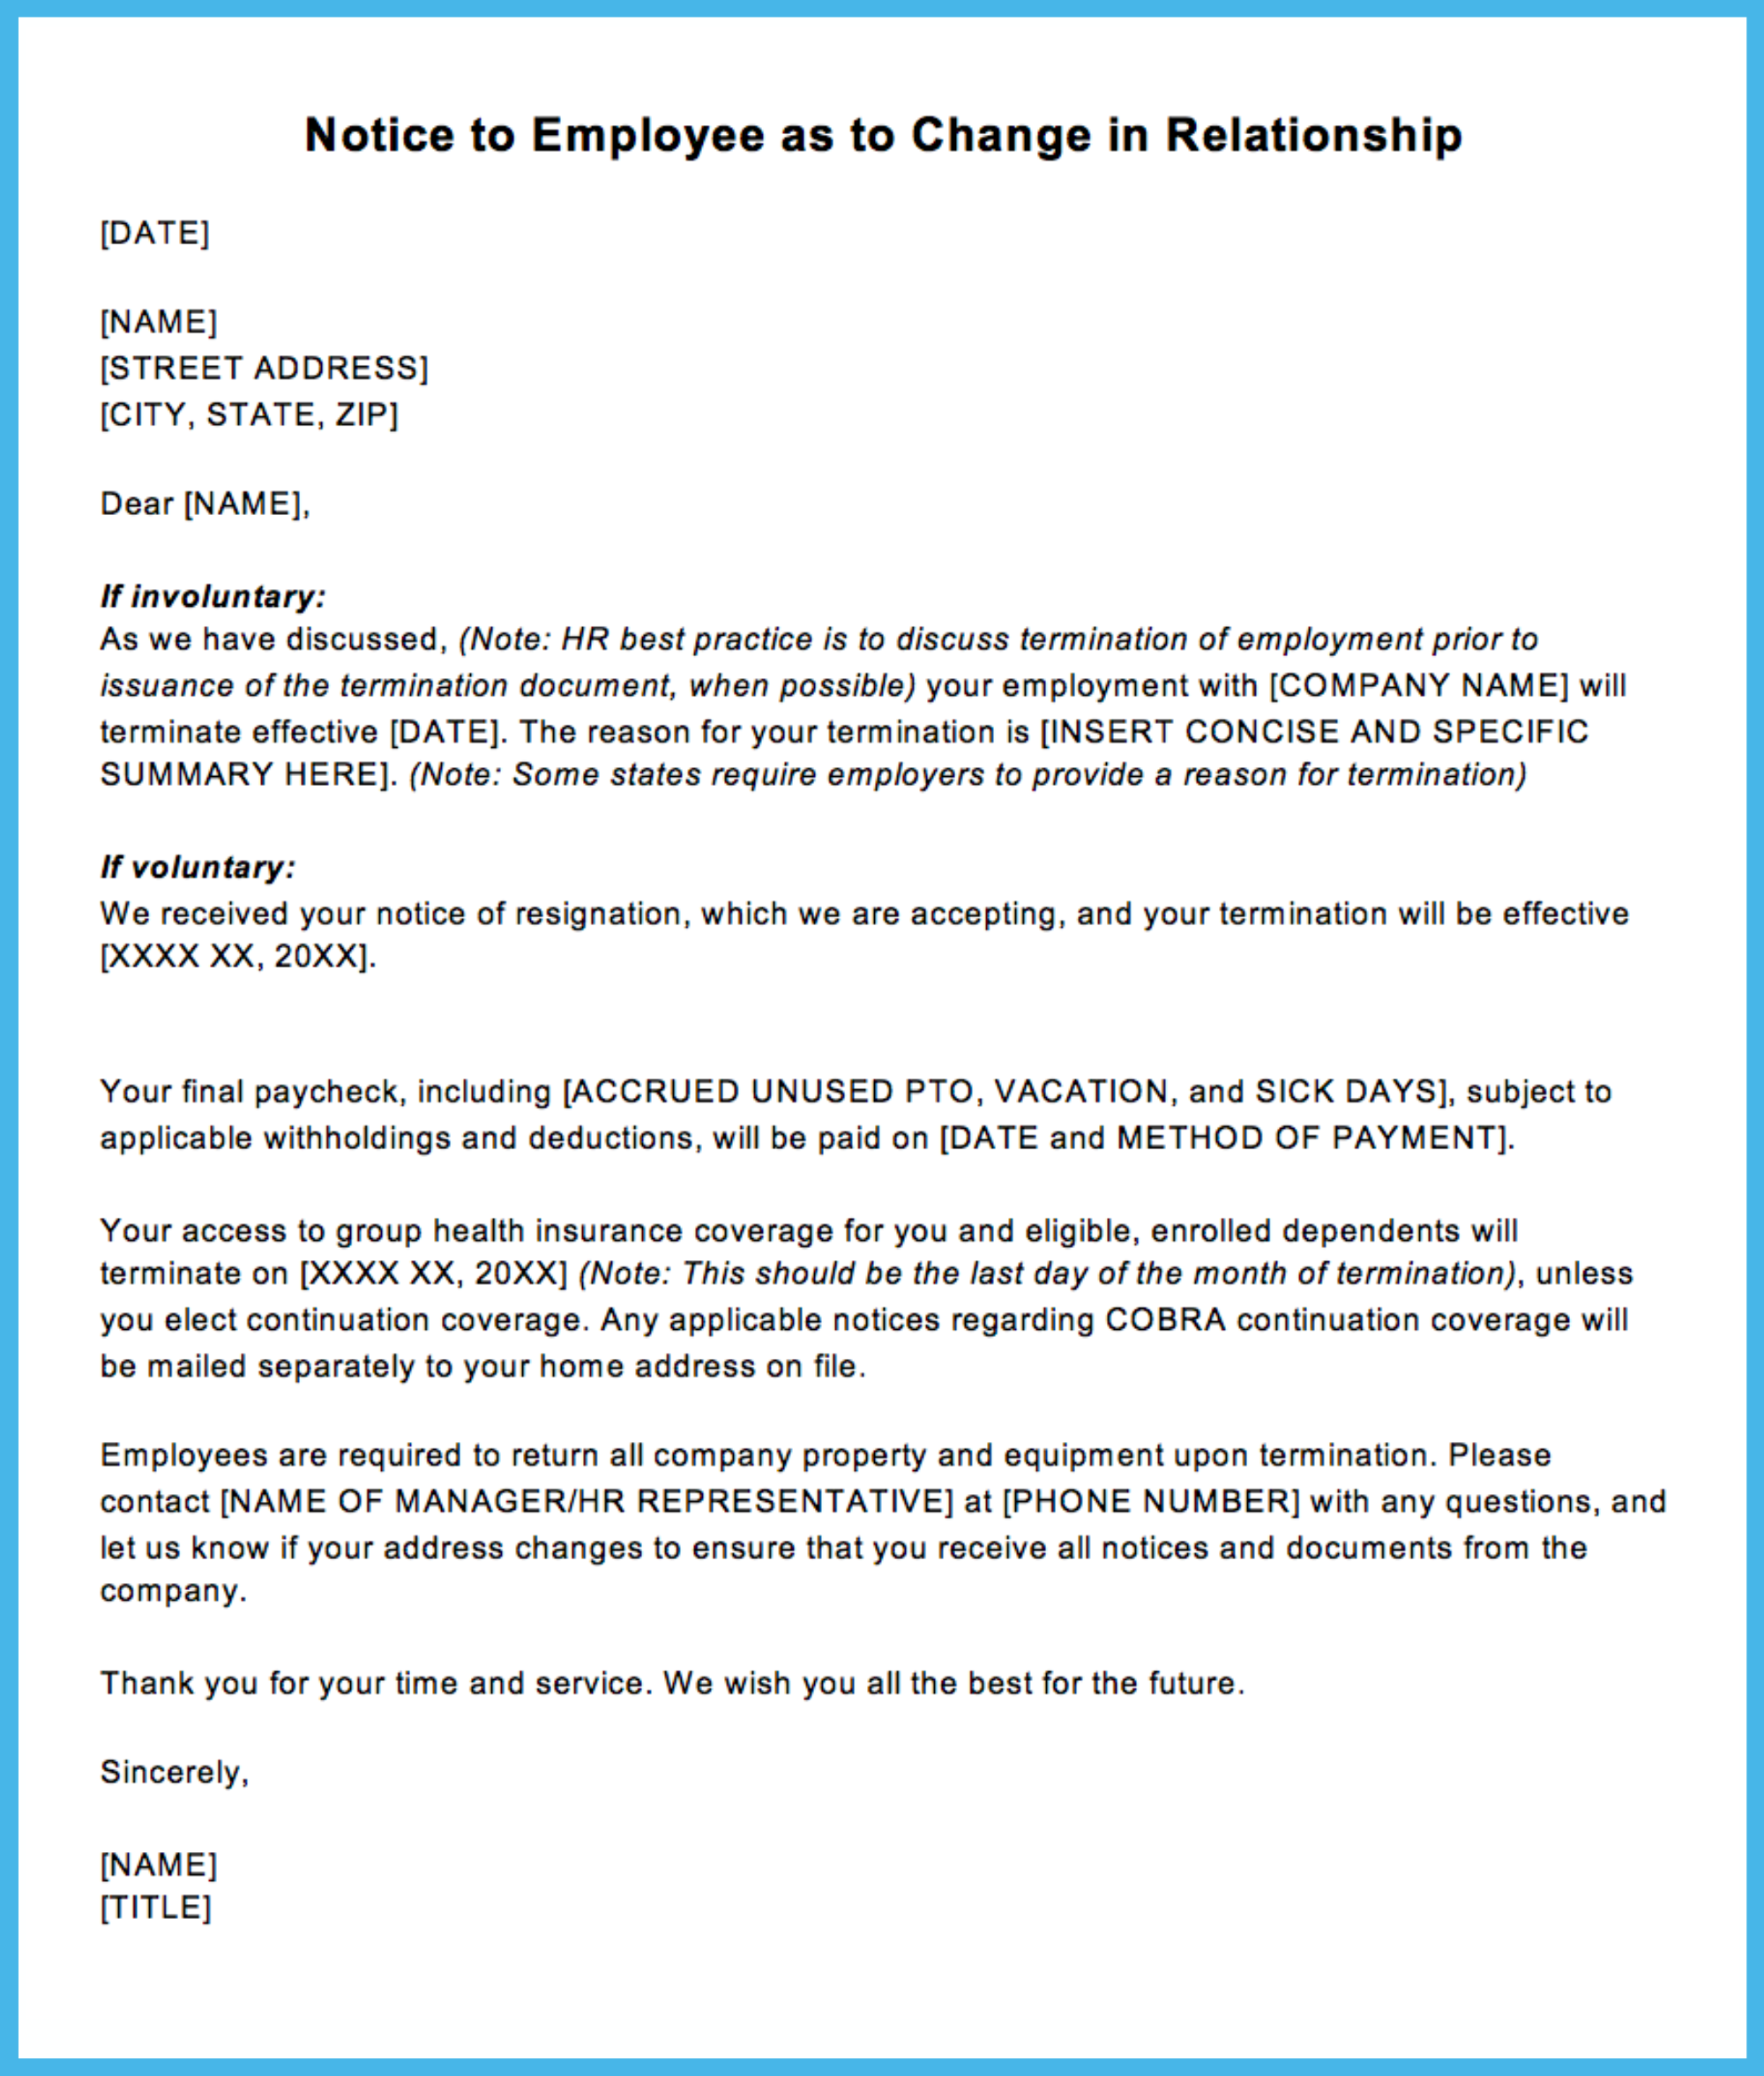 Sample termination letter for letting an employee go justworks please note that this sample termination letter assumes no severance is being paid if severance is being paid you should consider using a separate spiritdancerdesigns Image collections